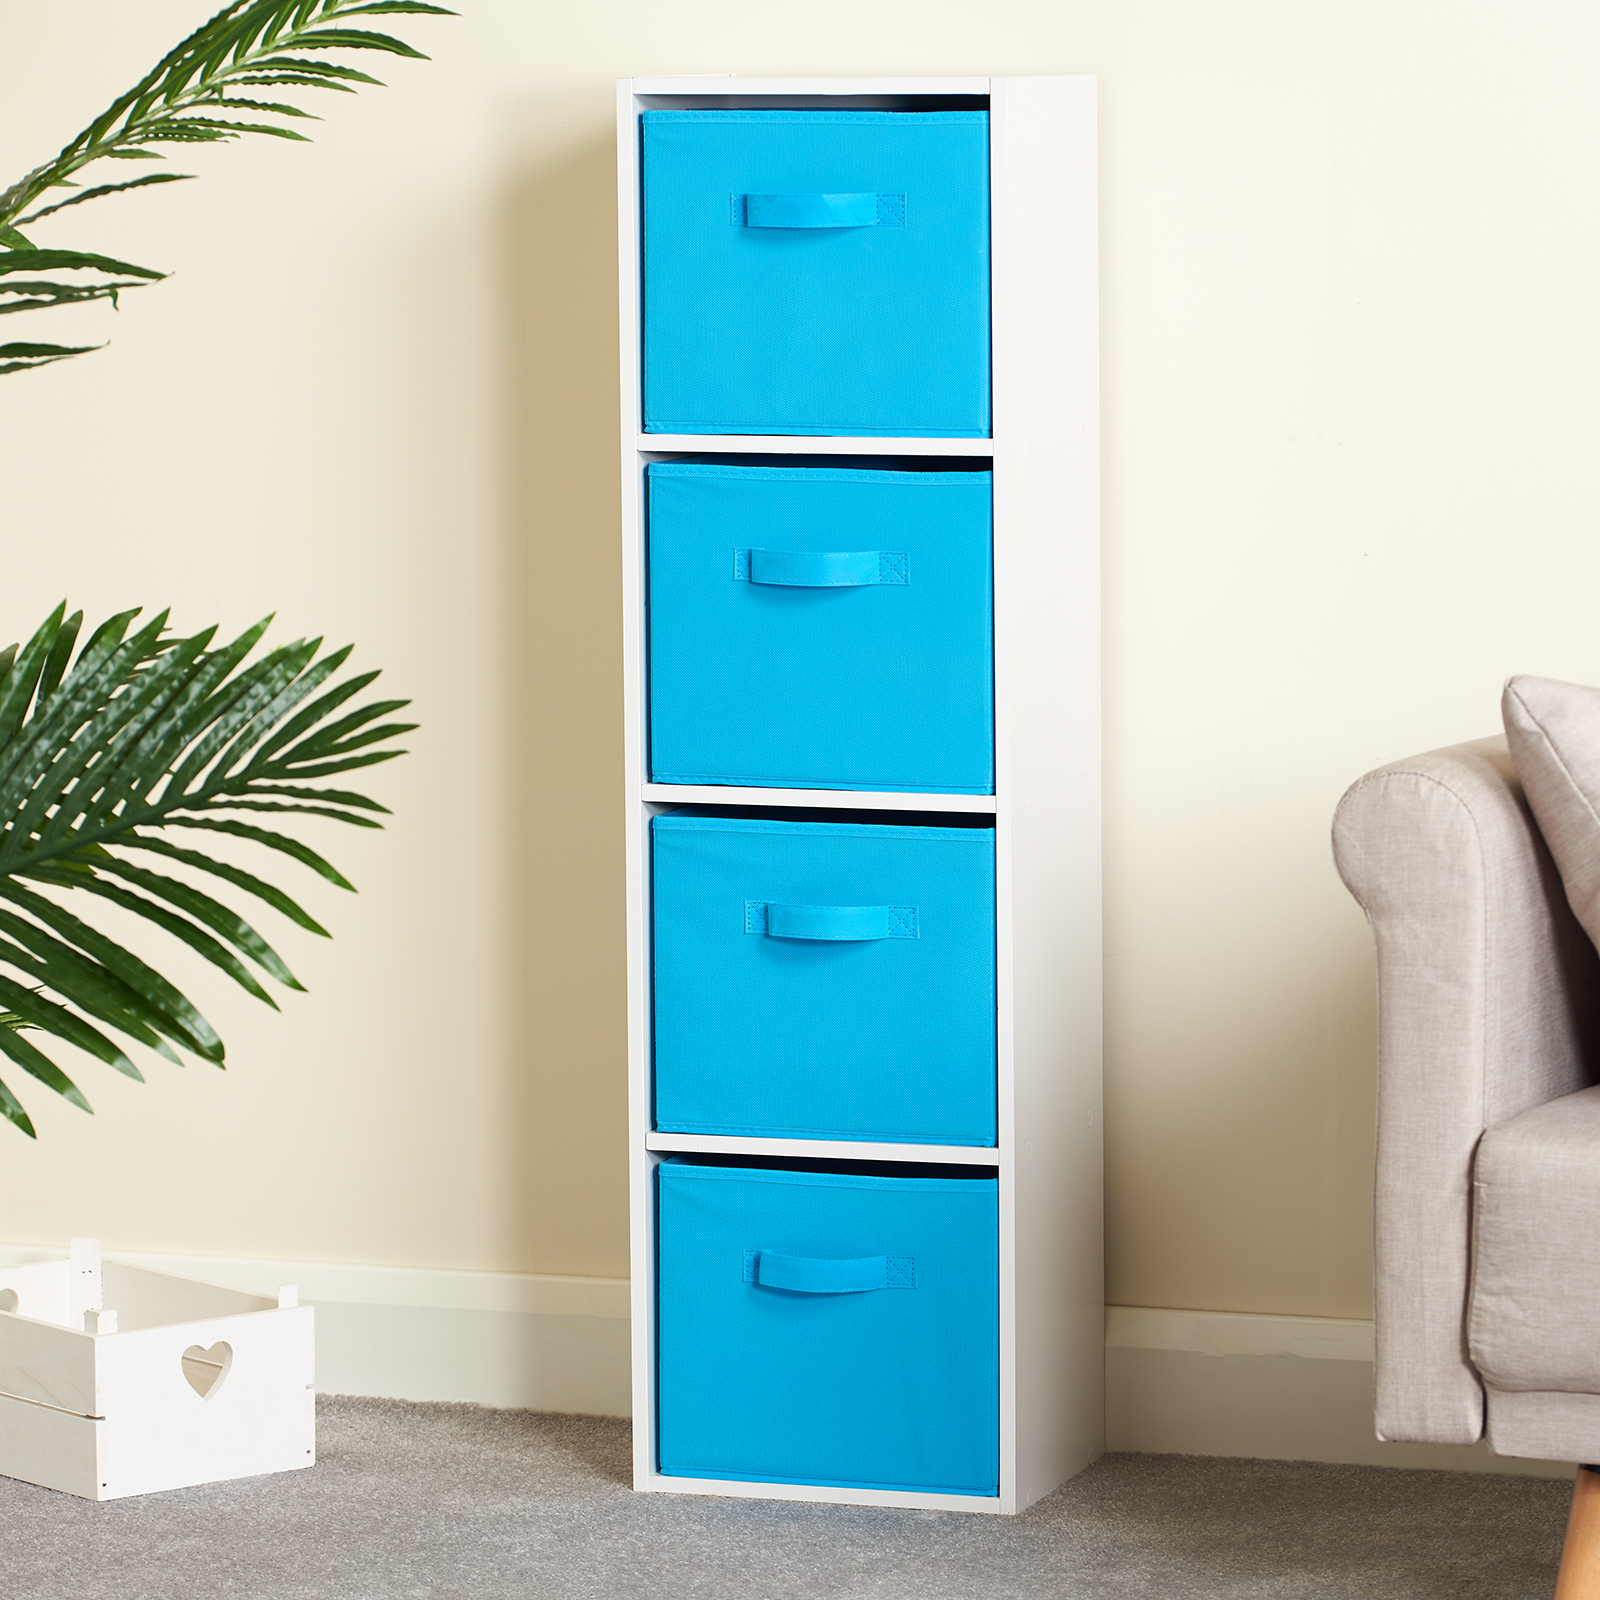 Hartleys-4-Tier-White-Bookcase-Wooden-Display-Shelving-Unit-amp-Fabric-Storage-Box thumbnail 21